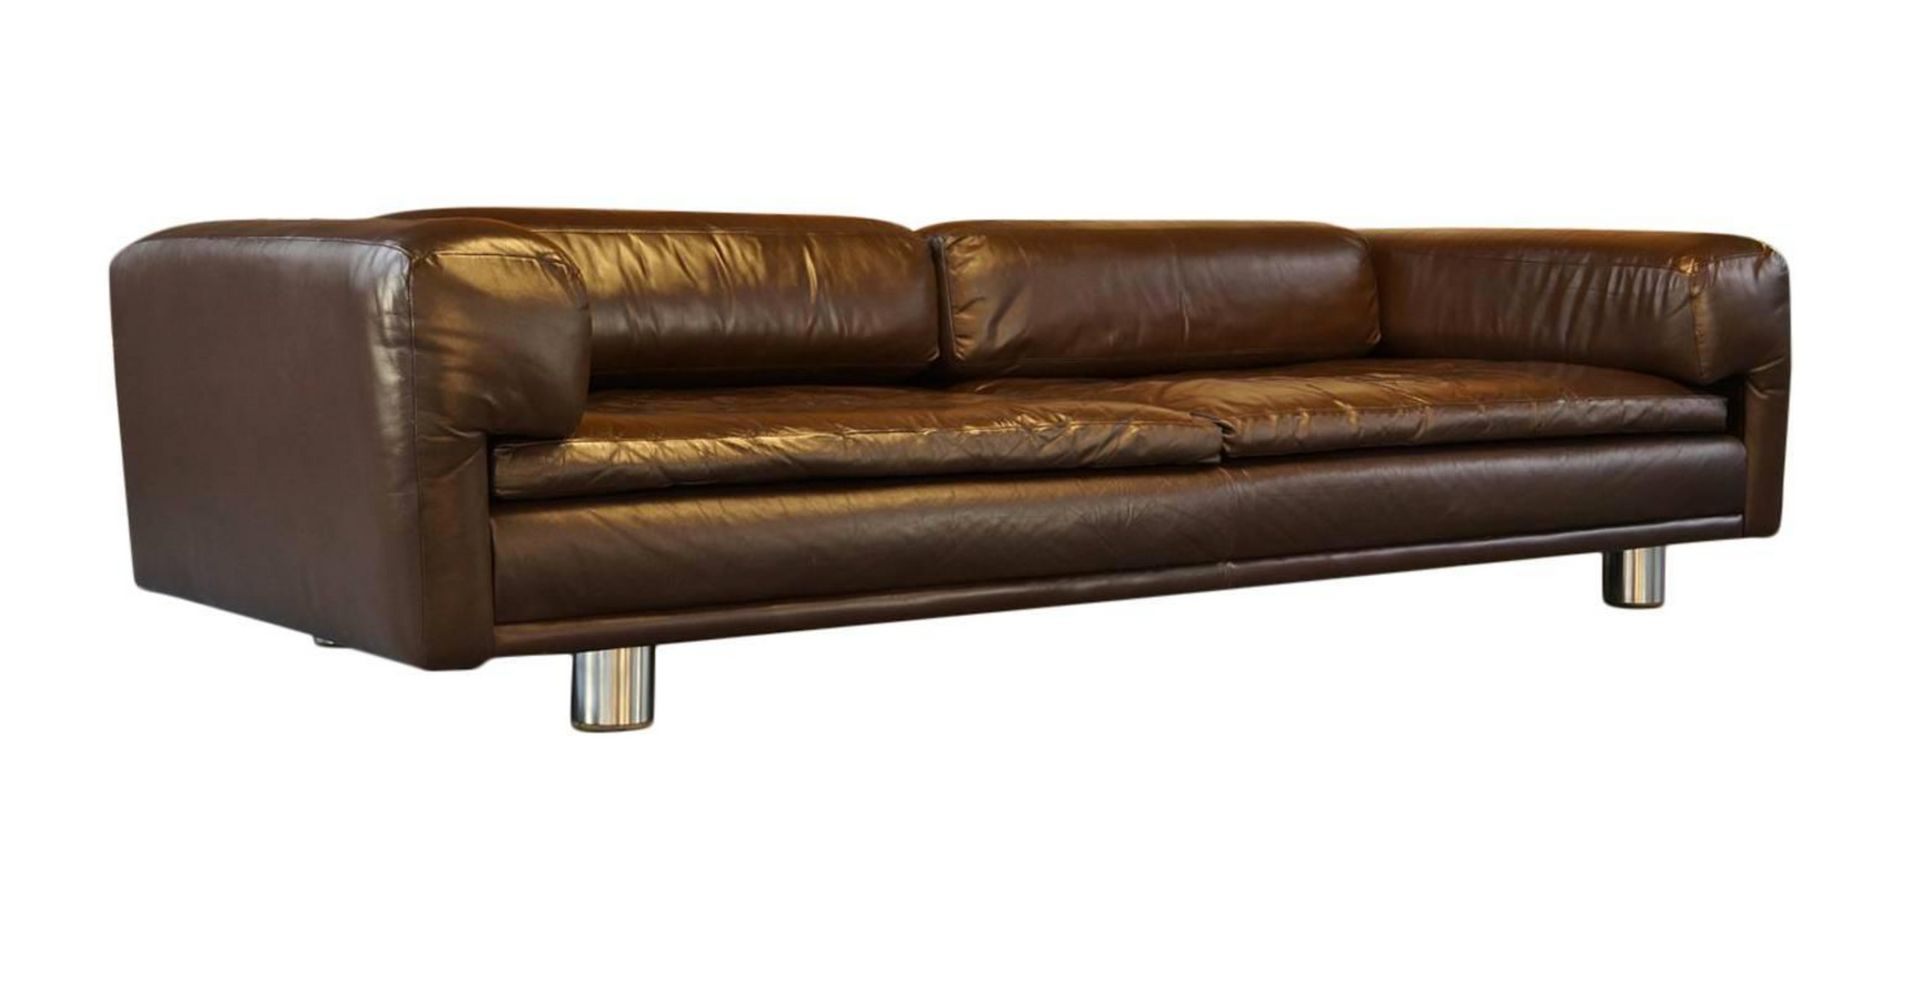 Hk Diplomat Large Brown Leather Sofa From Howard Keith 1970s For Sale At Pamono